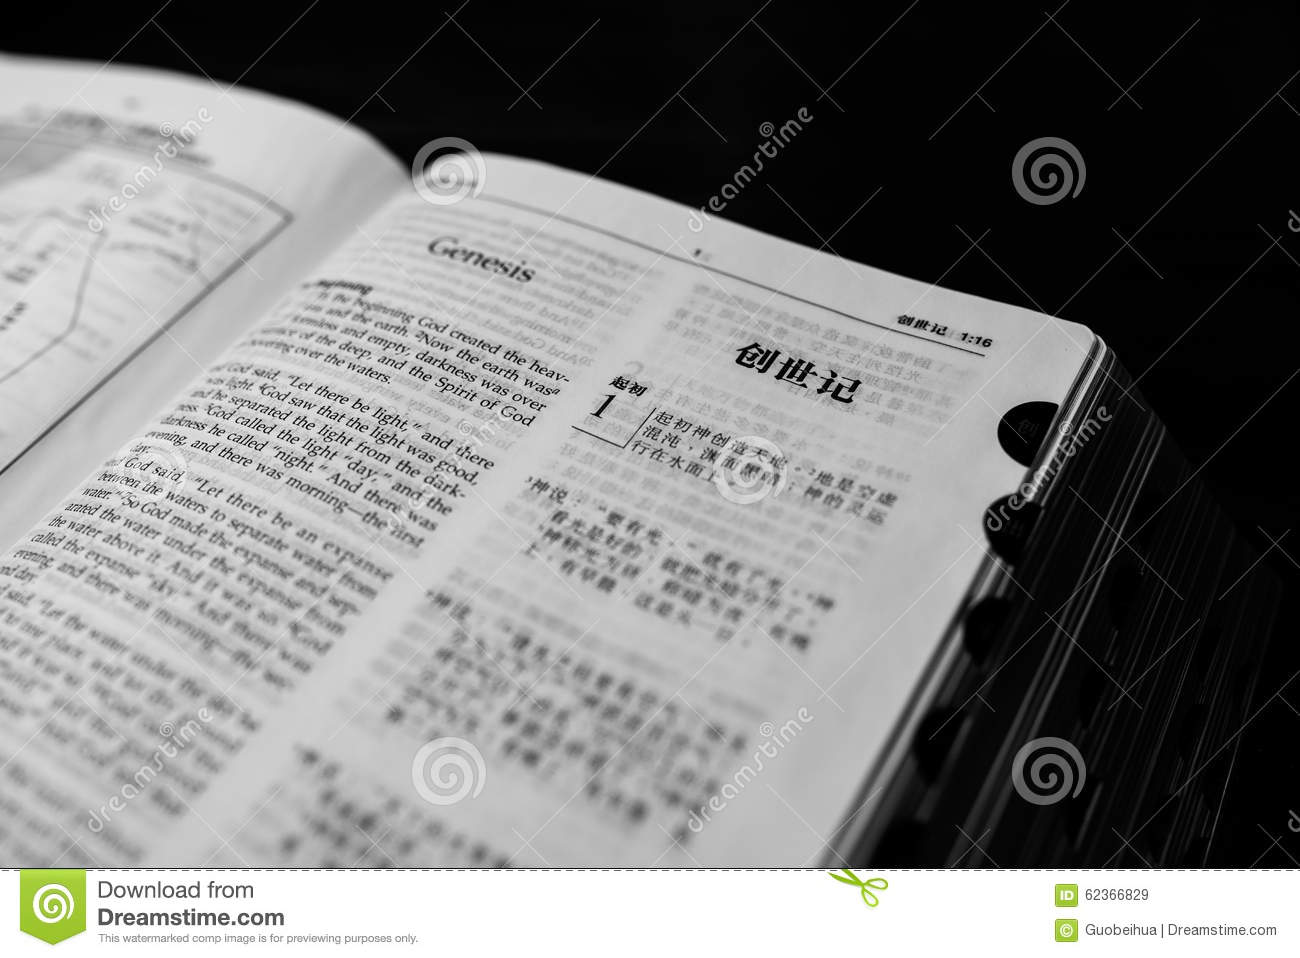 Chinese Bible stock image  Image of words, faith, religion